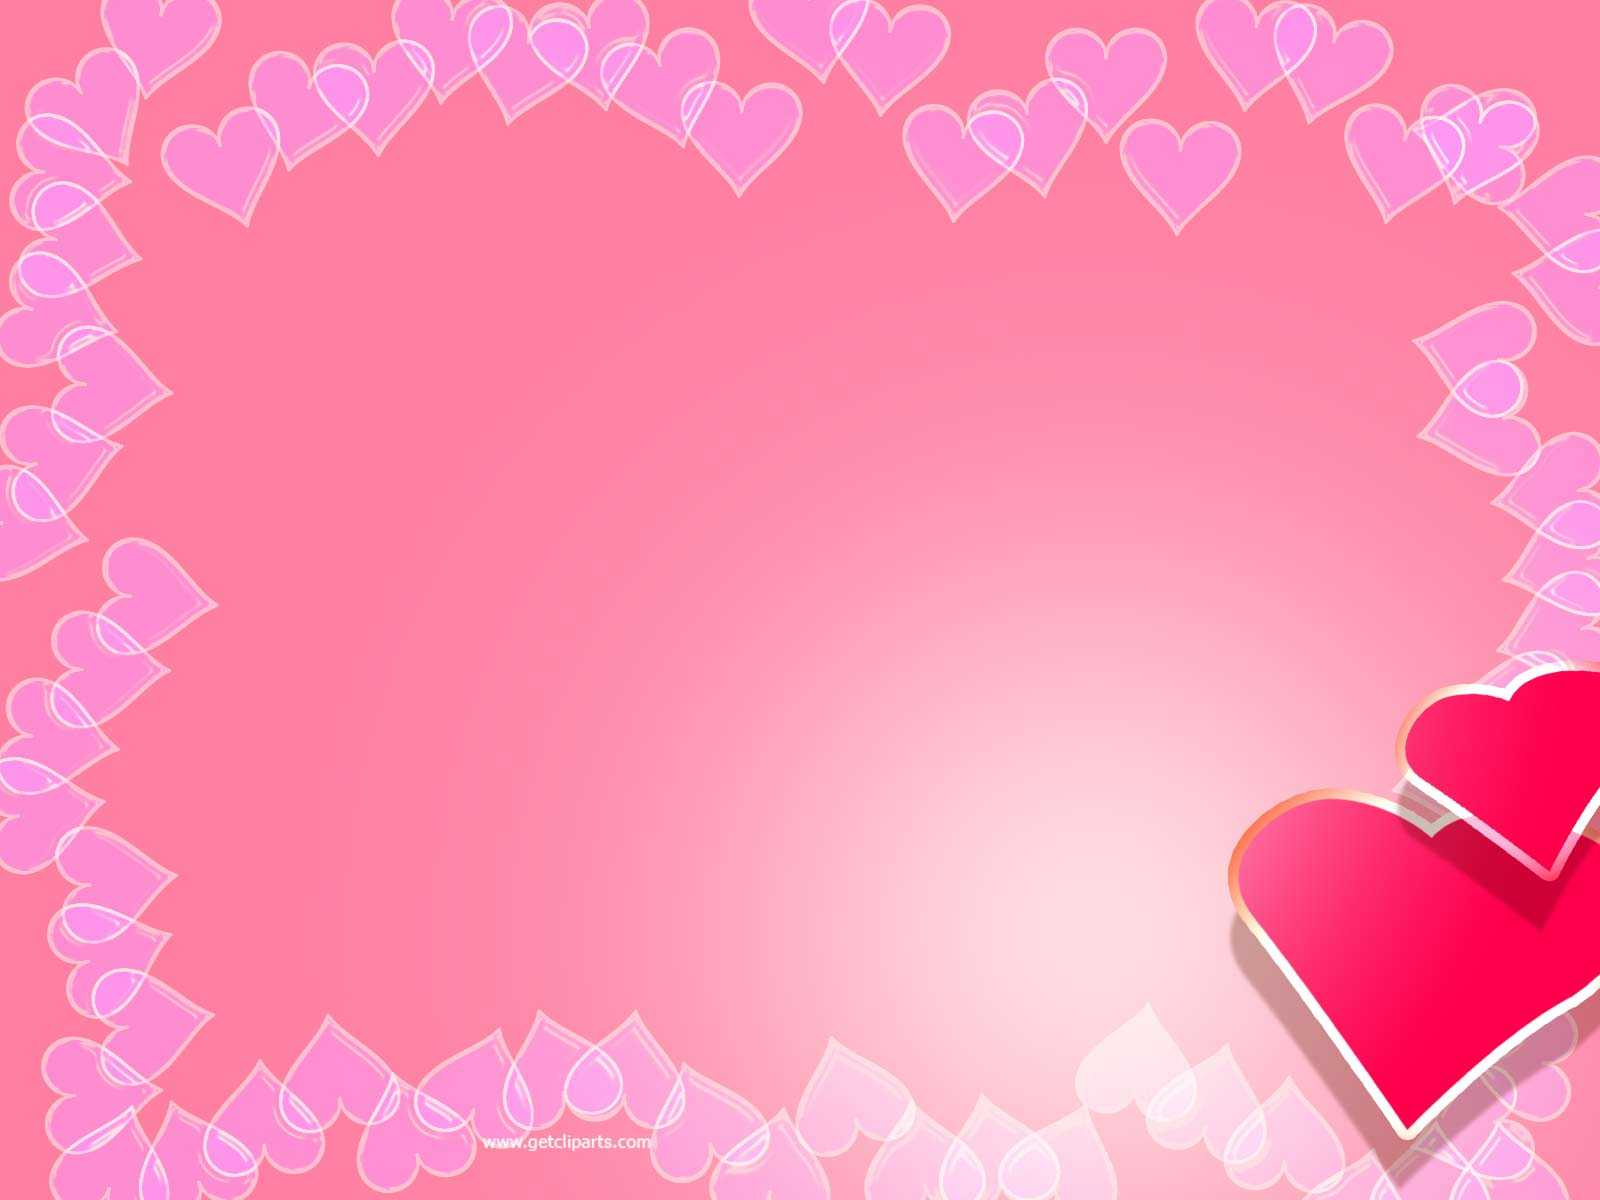 Valentine Backgrounds For Powerpoint - Border And Frame Ppt throughout Valentine Powerpoint Templates Free